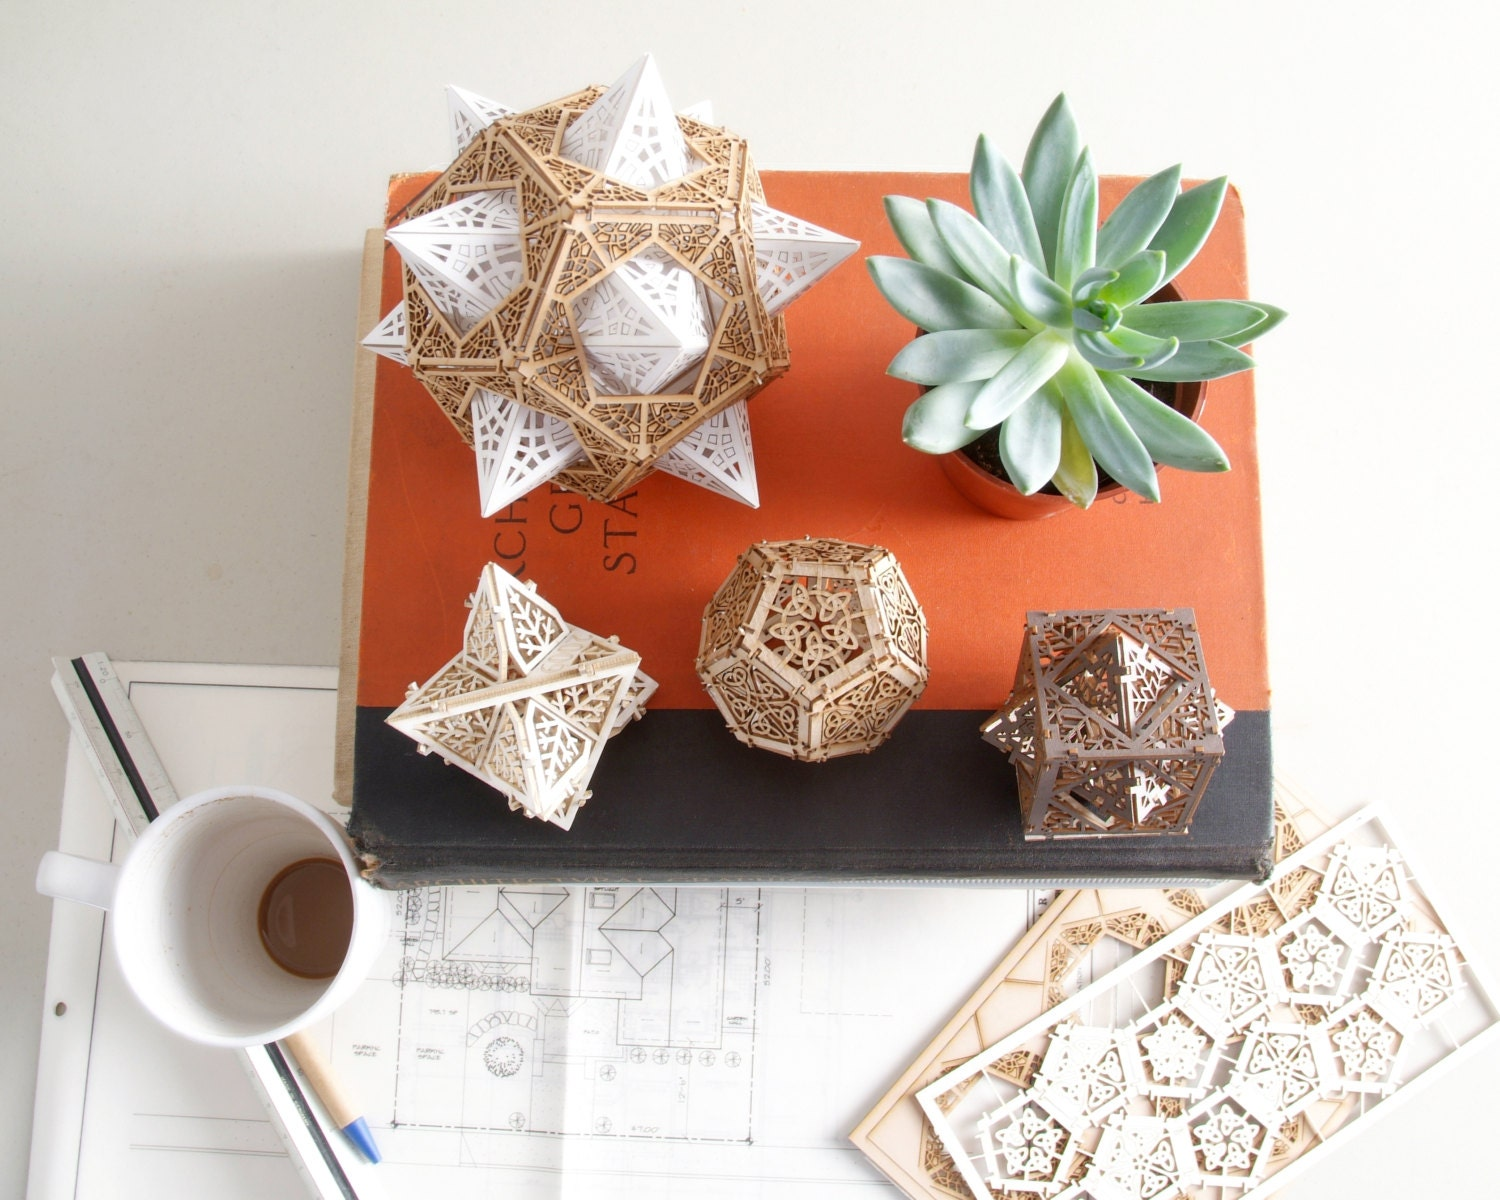 Sacred Geometry Model Kit 3 Small Orbs A Unique Gift Of